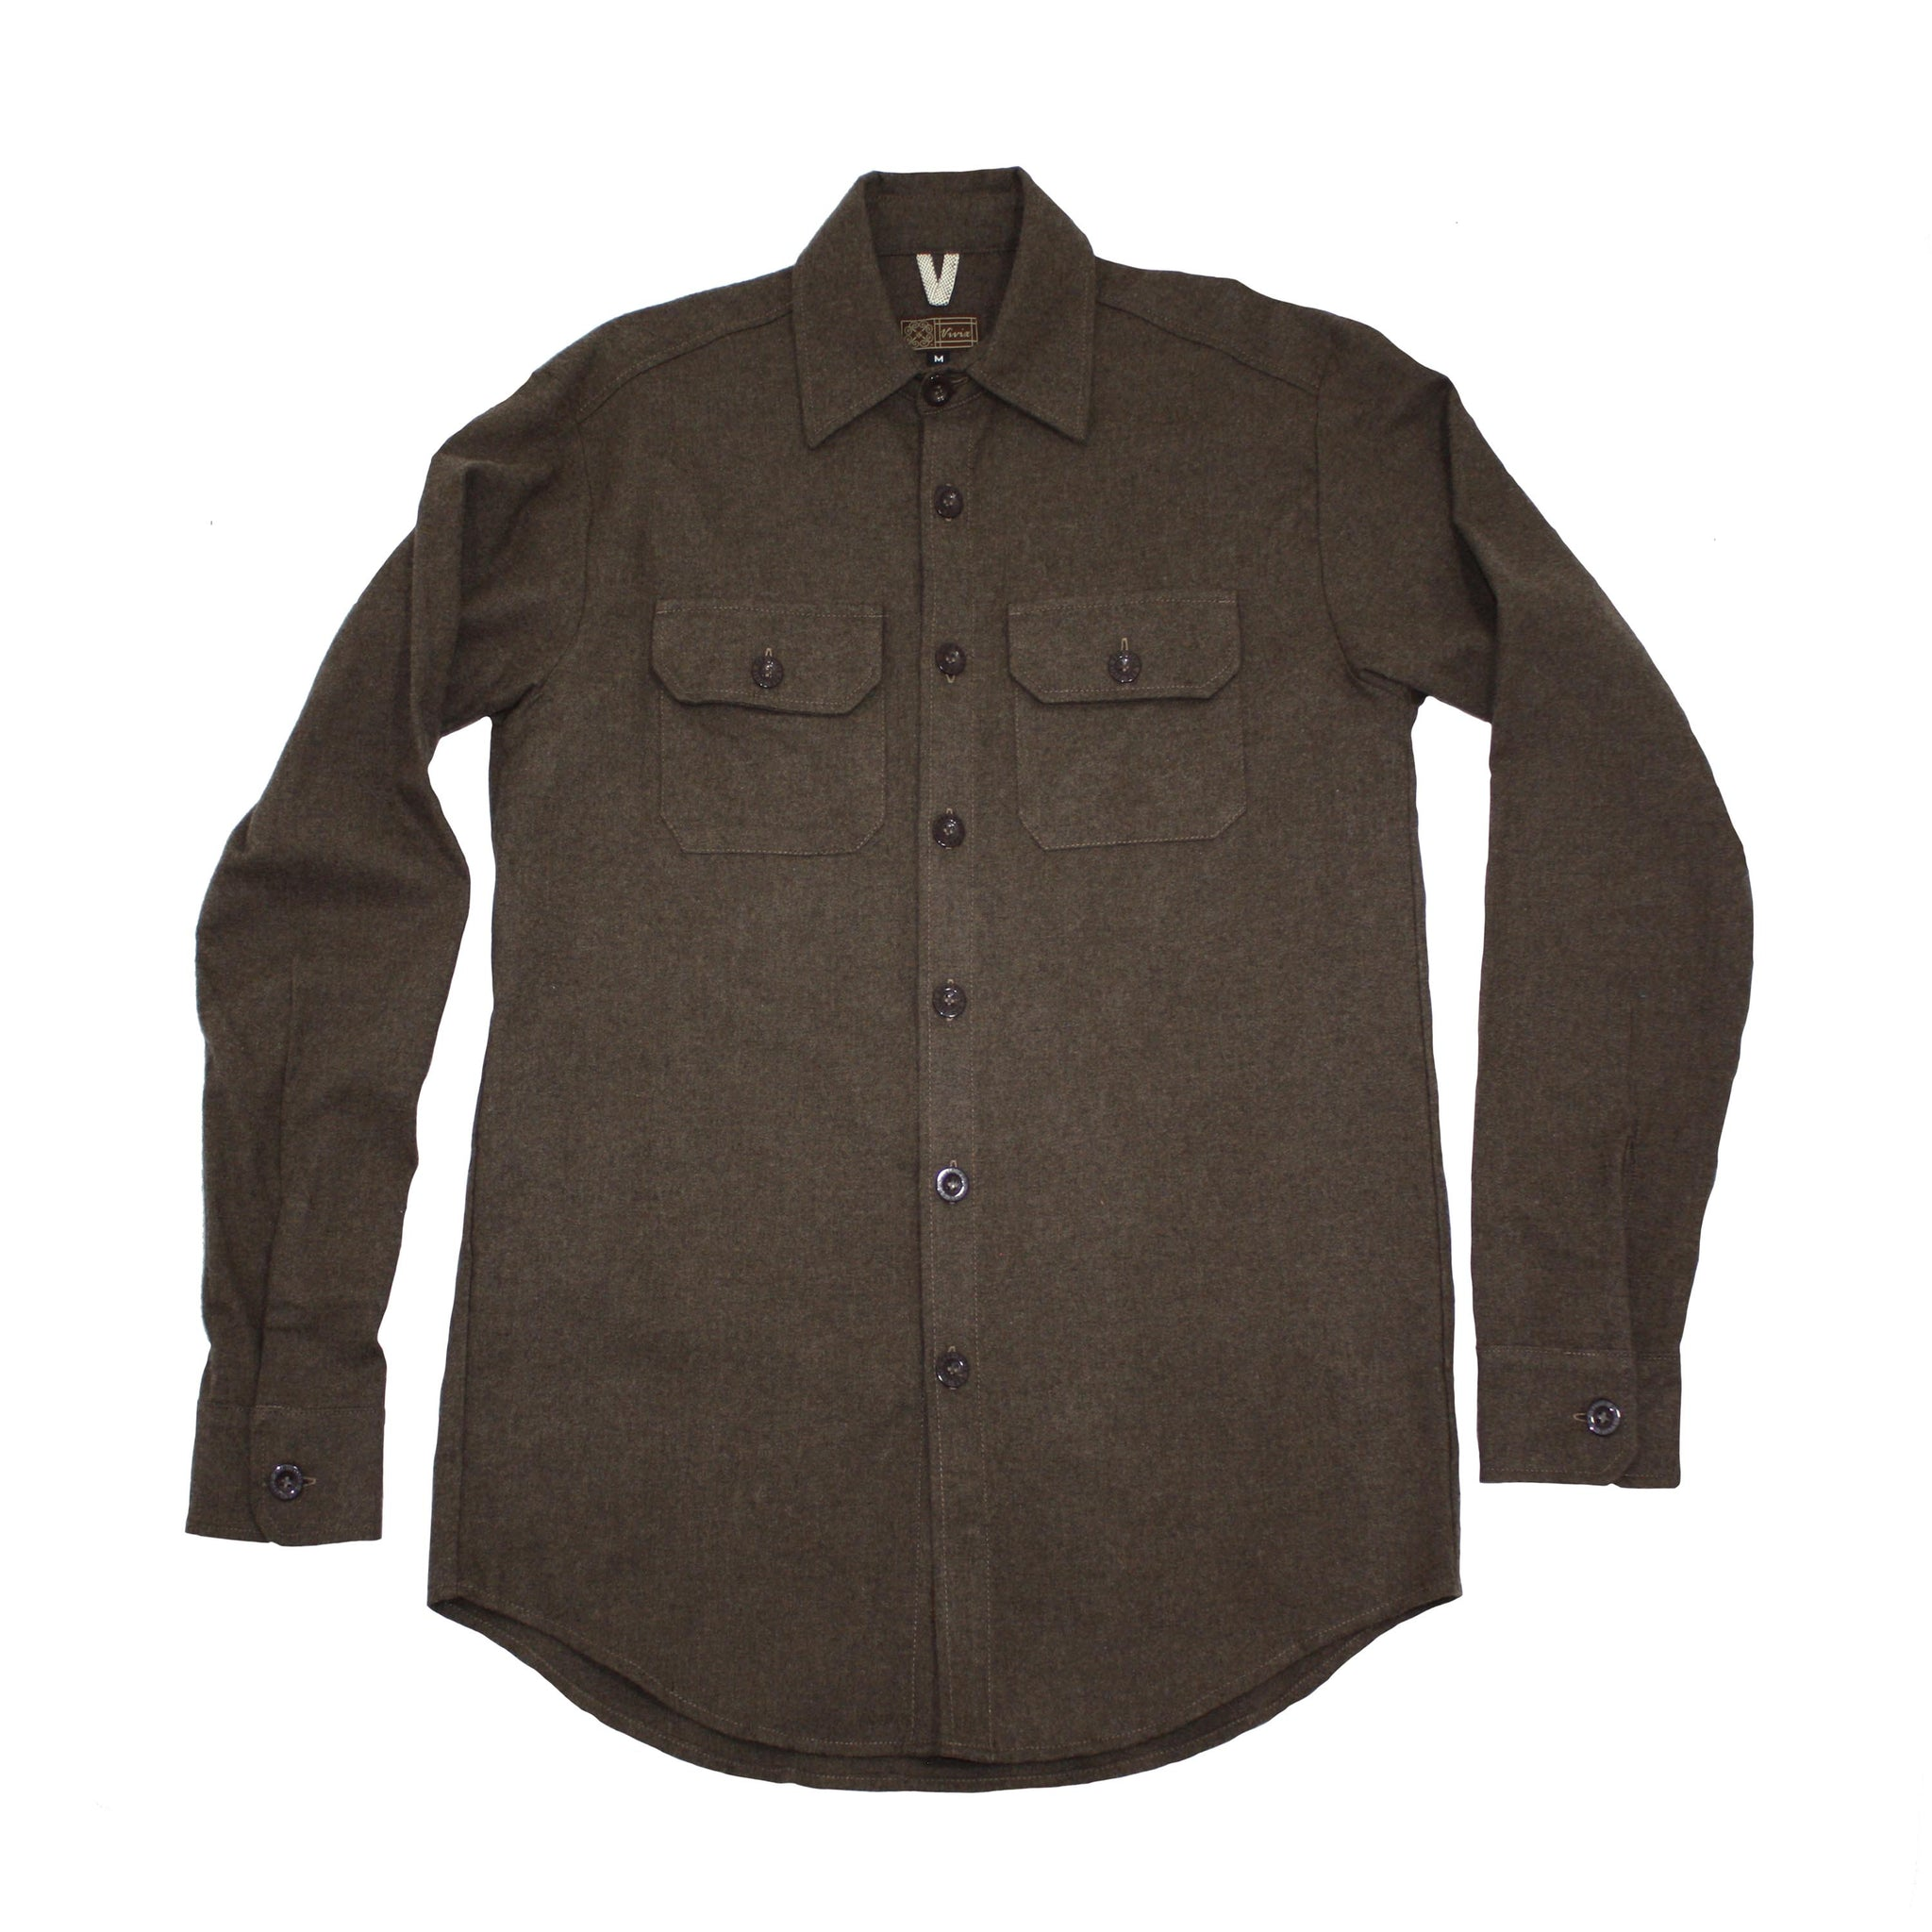 Vivix 659 long sleeve button up